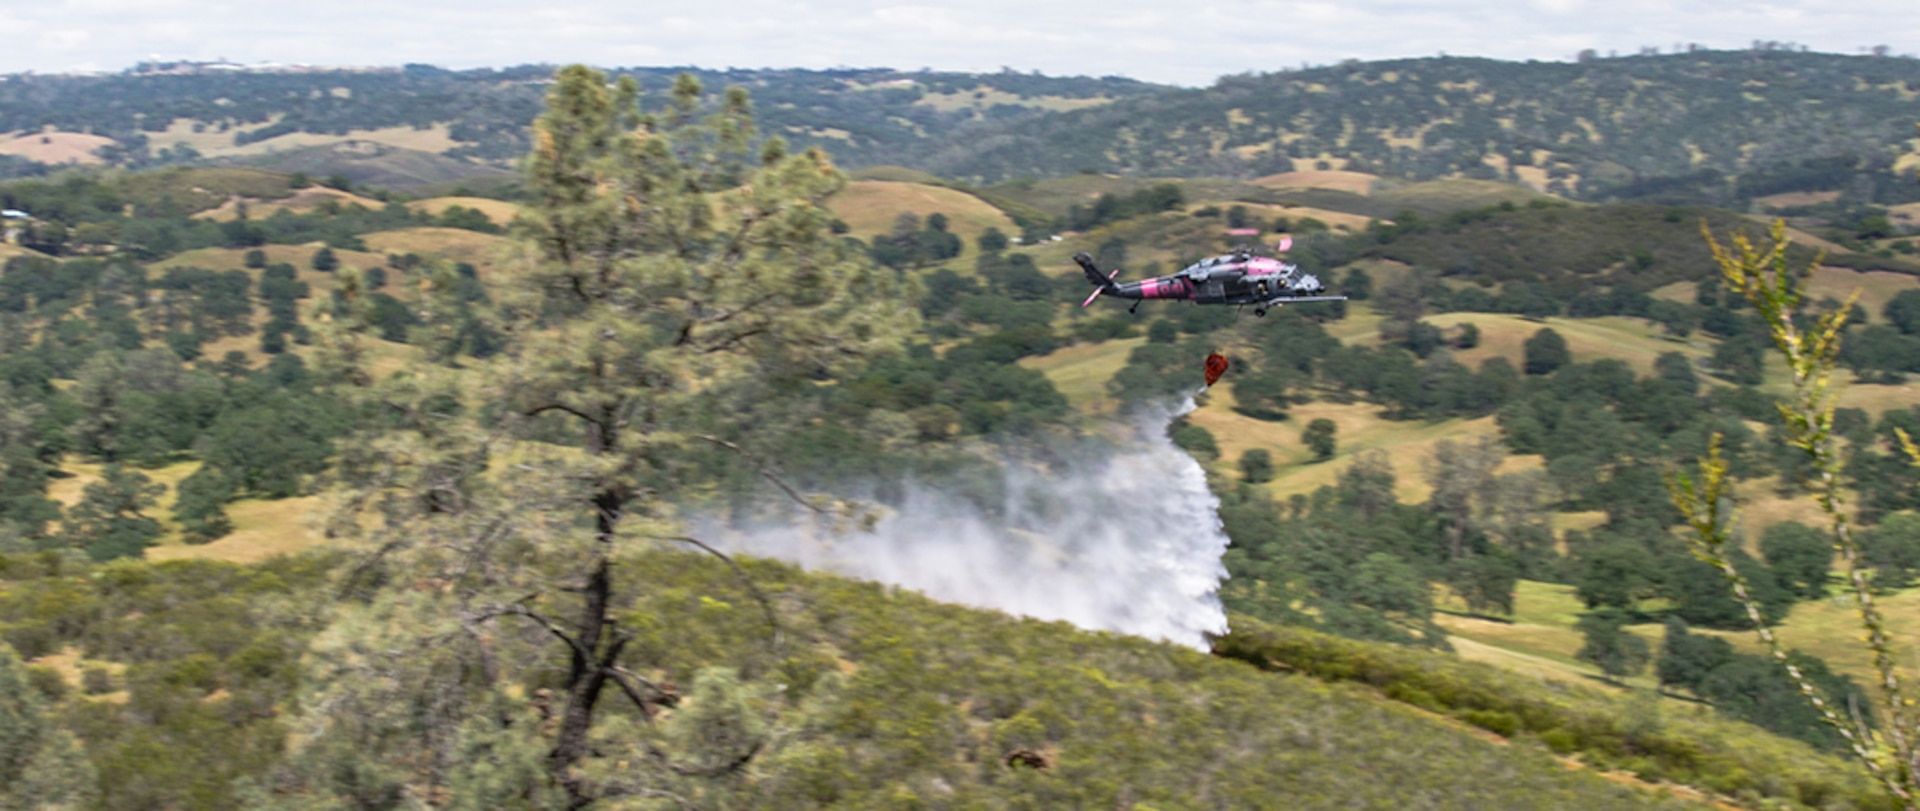 A U.S. Air Force HH-60 Pave Hawk rescue helicopter from the 129th Rescue Wing, California National Guard, deploys its water bucket on a simulated fire during annual joint aerial fire fighting training near Ione, California, April 24, 2021.